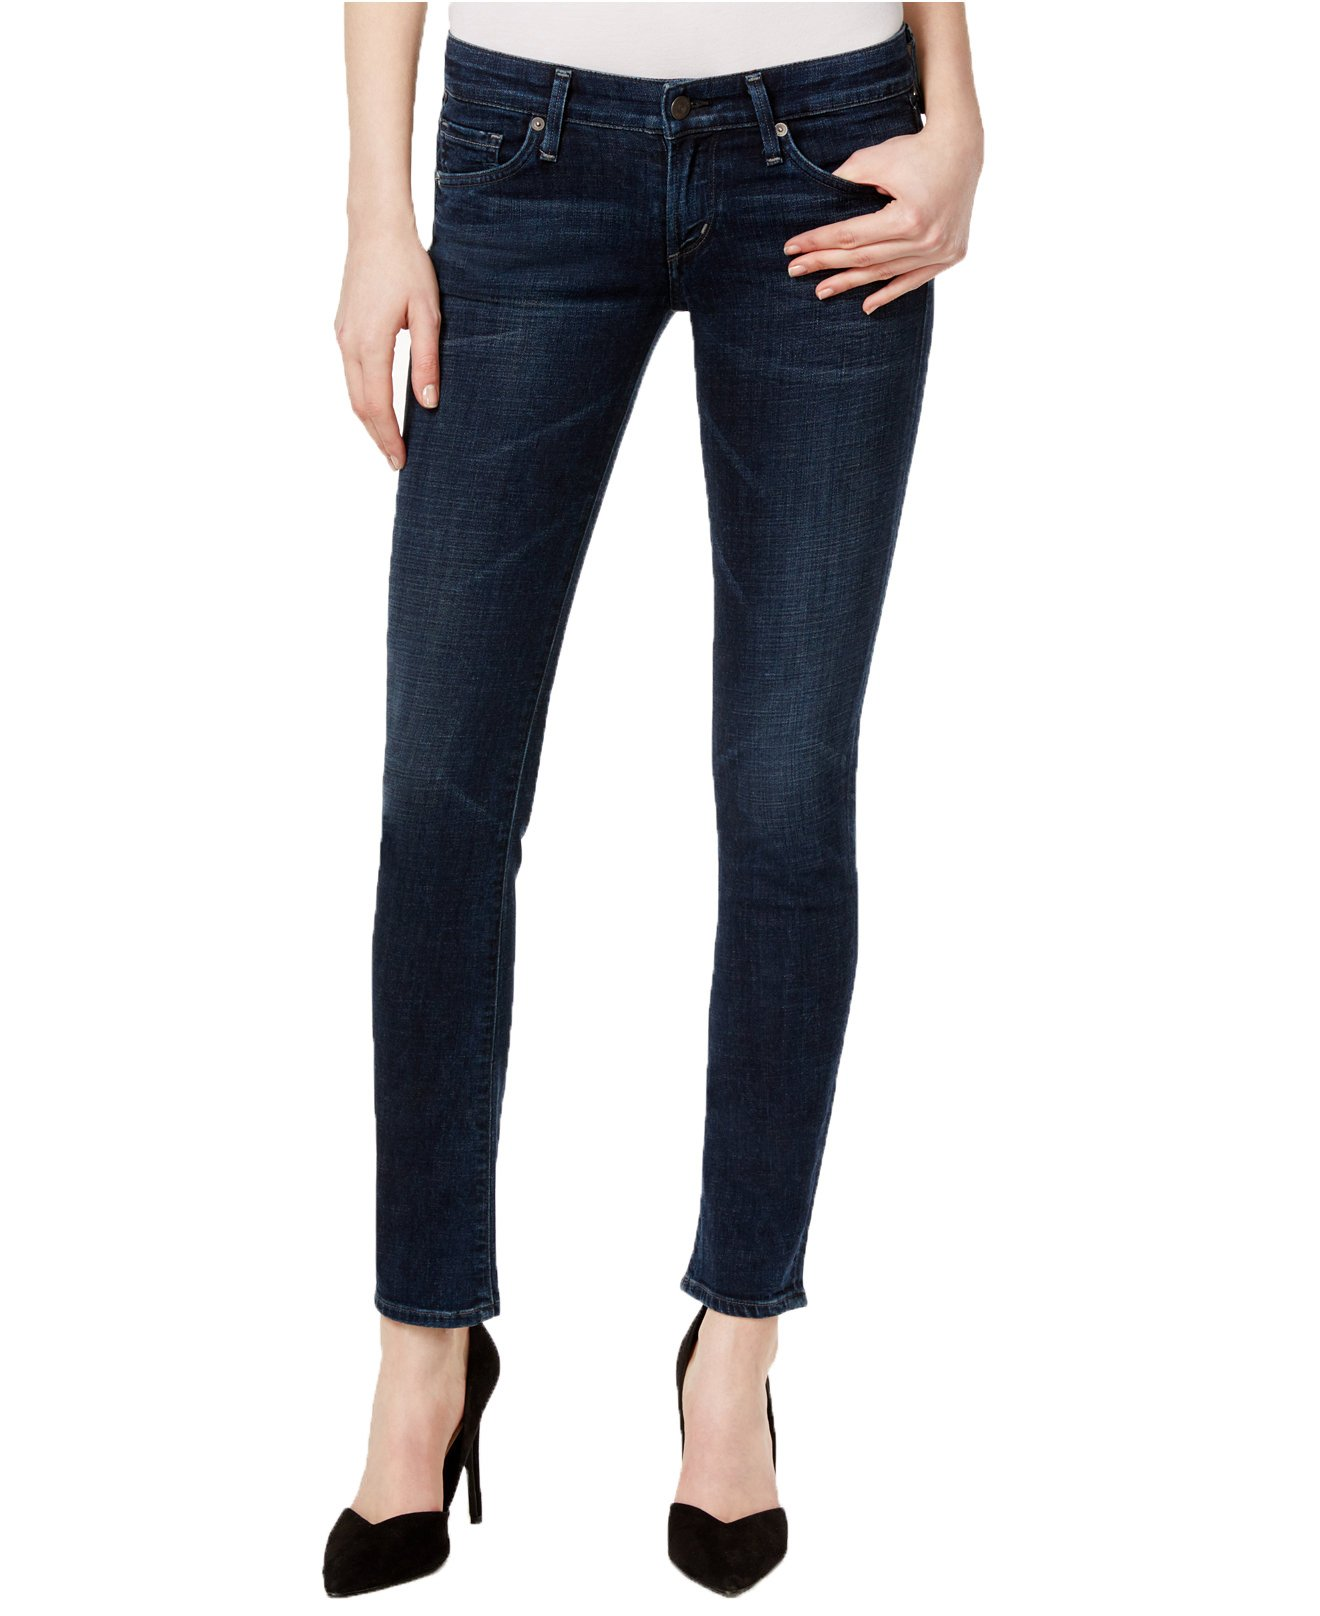 Citizens of Humanity Women's Racer Low Rise Skinny Jeans (29, Oak Ridge Wash) by Citizens of Humanity